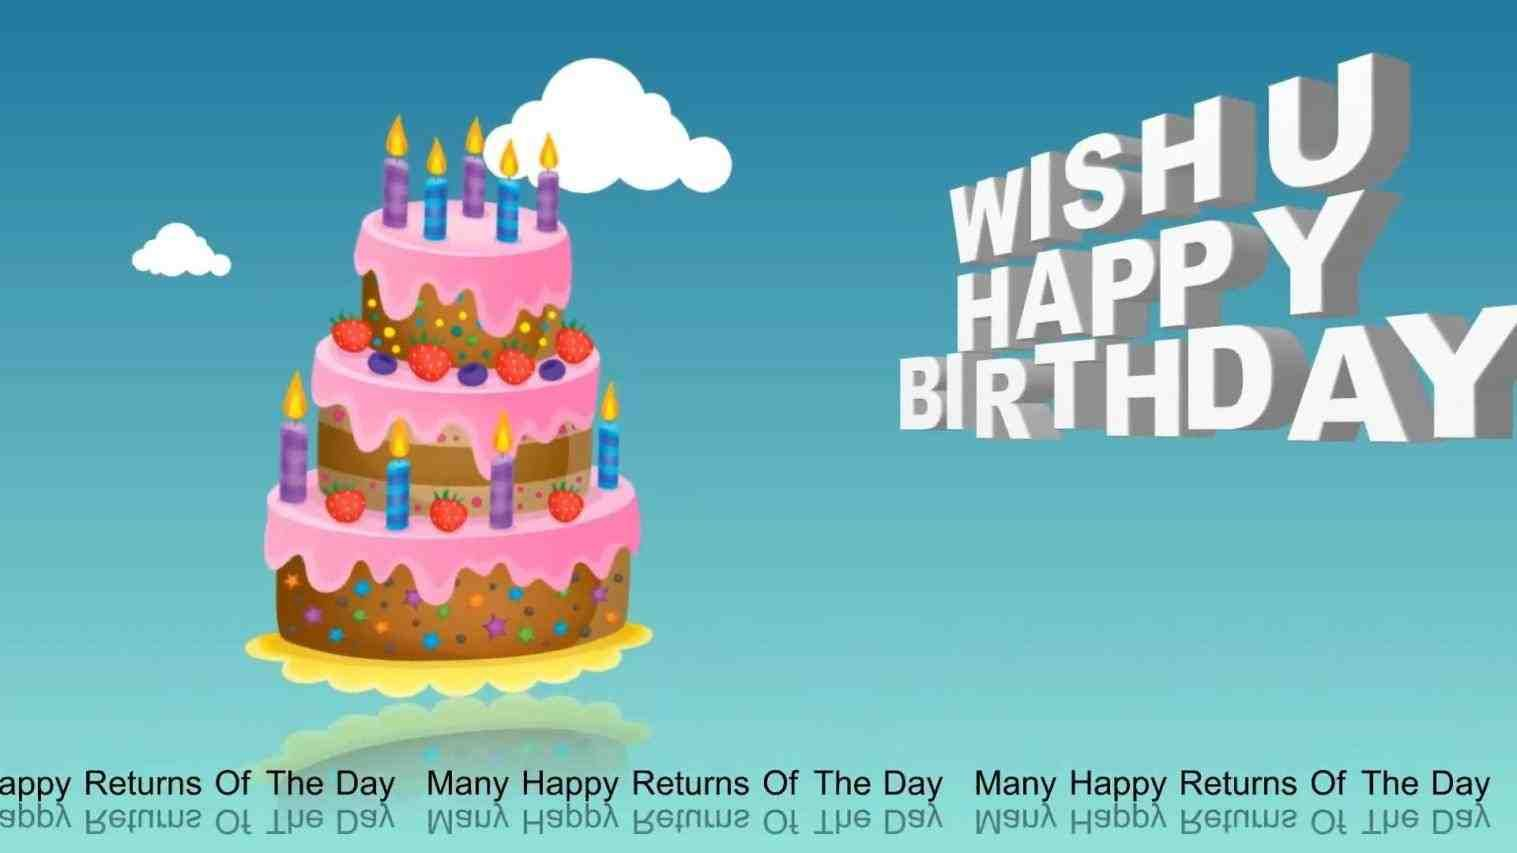 Happy Birthday 3d Animation Free Download Hd Printable Cards For Mom Remarkable Print